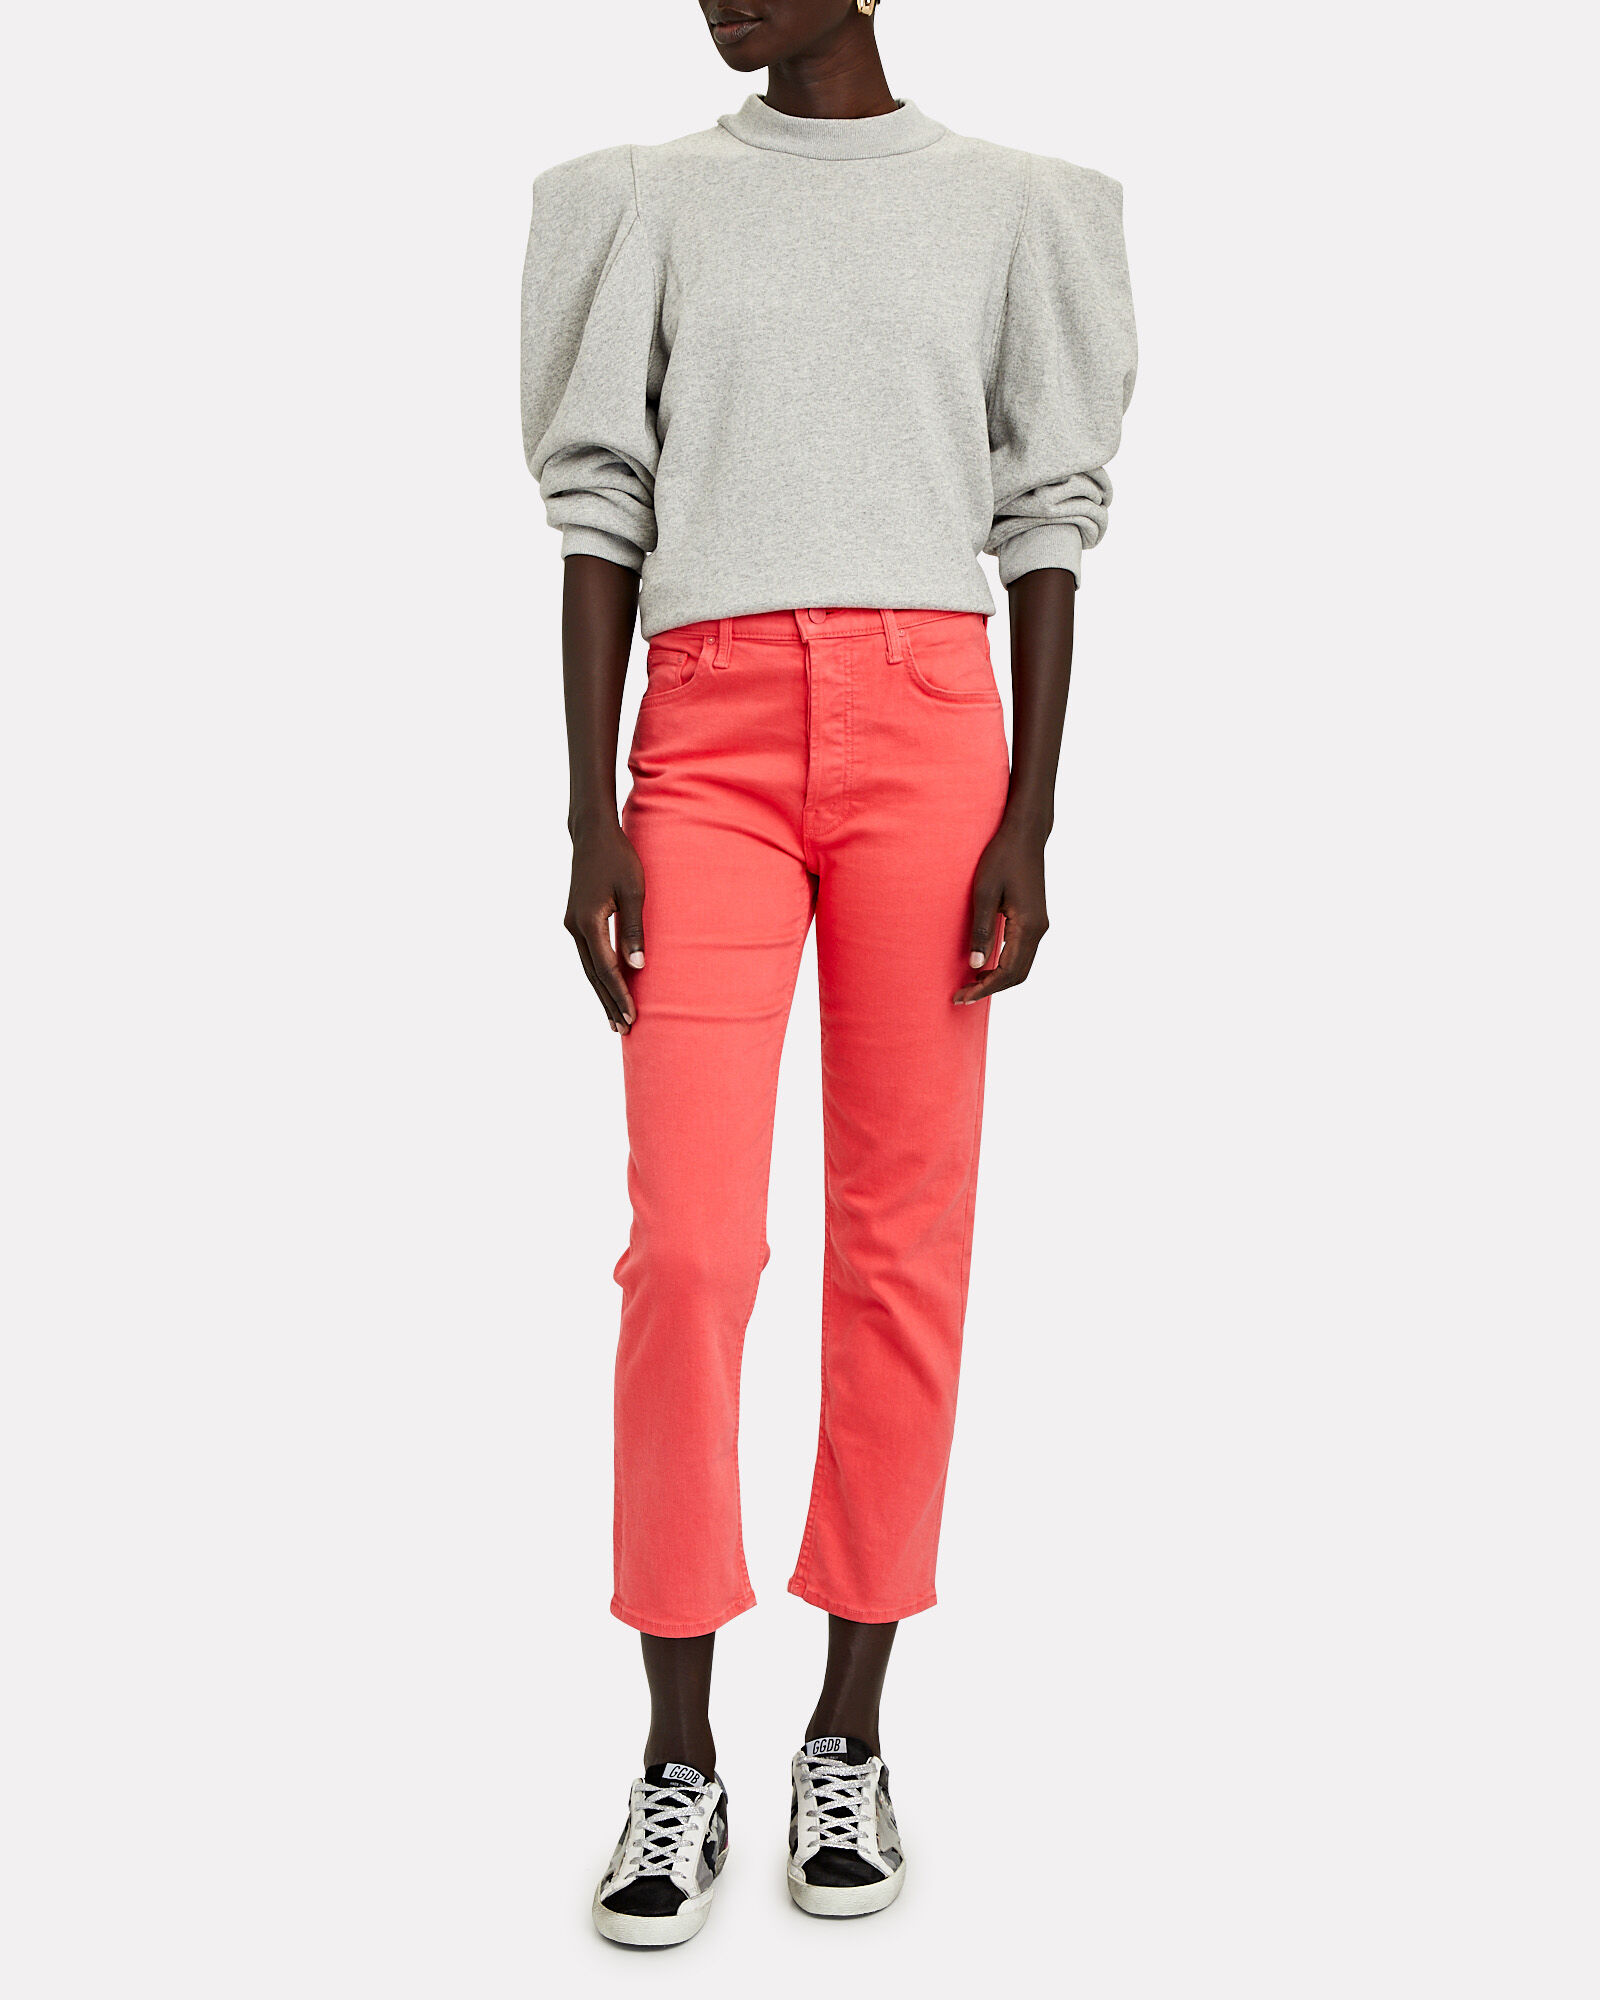 Tomcat High-Rise Cropped Jeans, PINK, hi-res